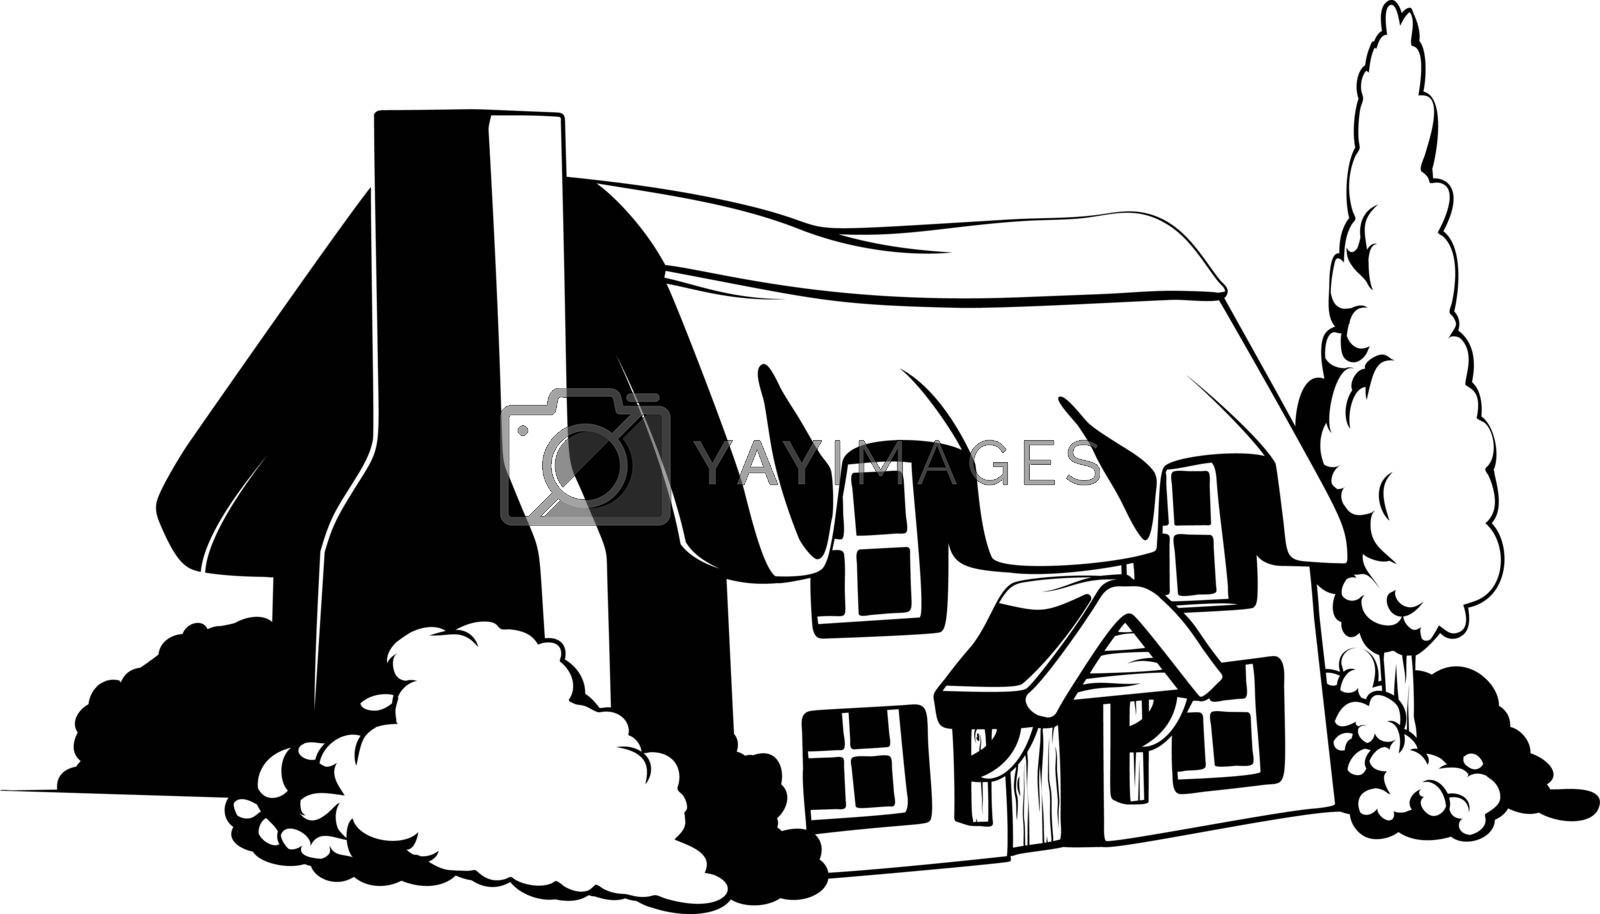 Country cottage illustration of a cute country or farem cottage house